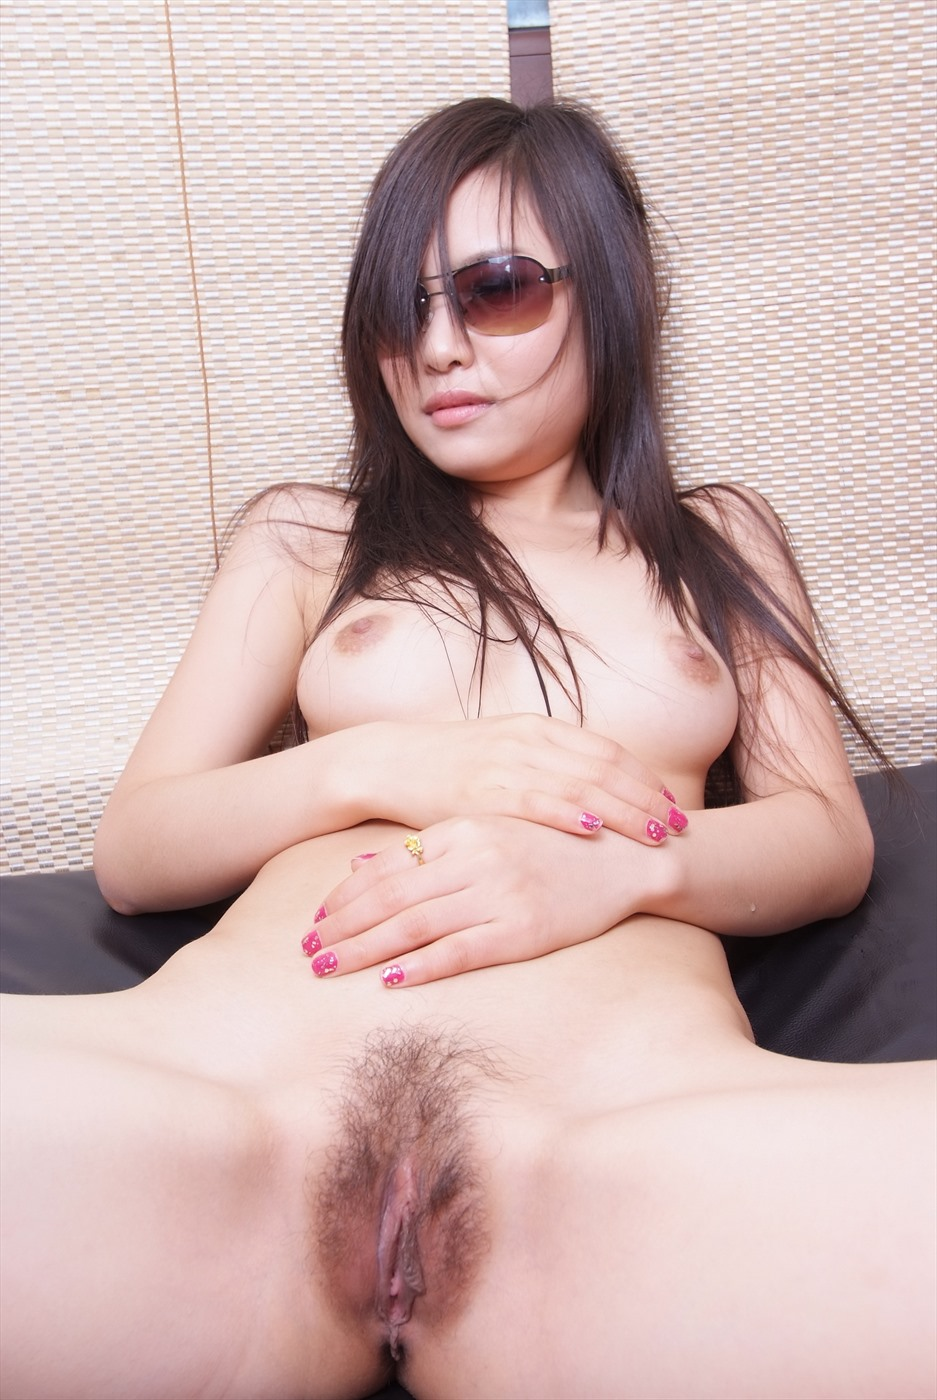 Assure Nude sexy female asian women amusing